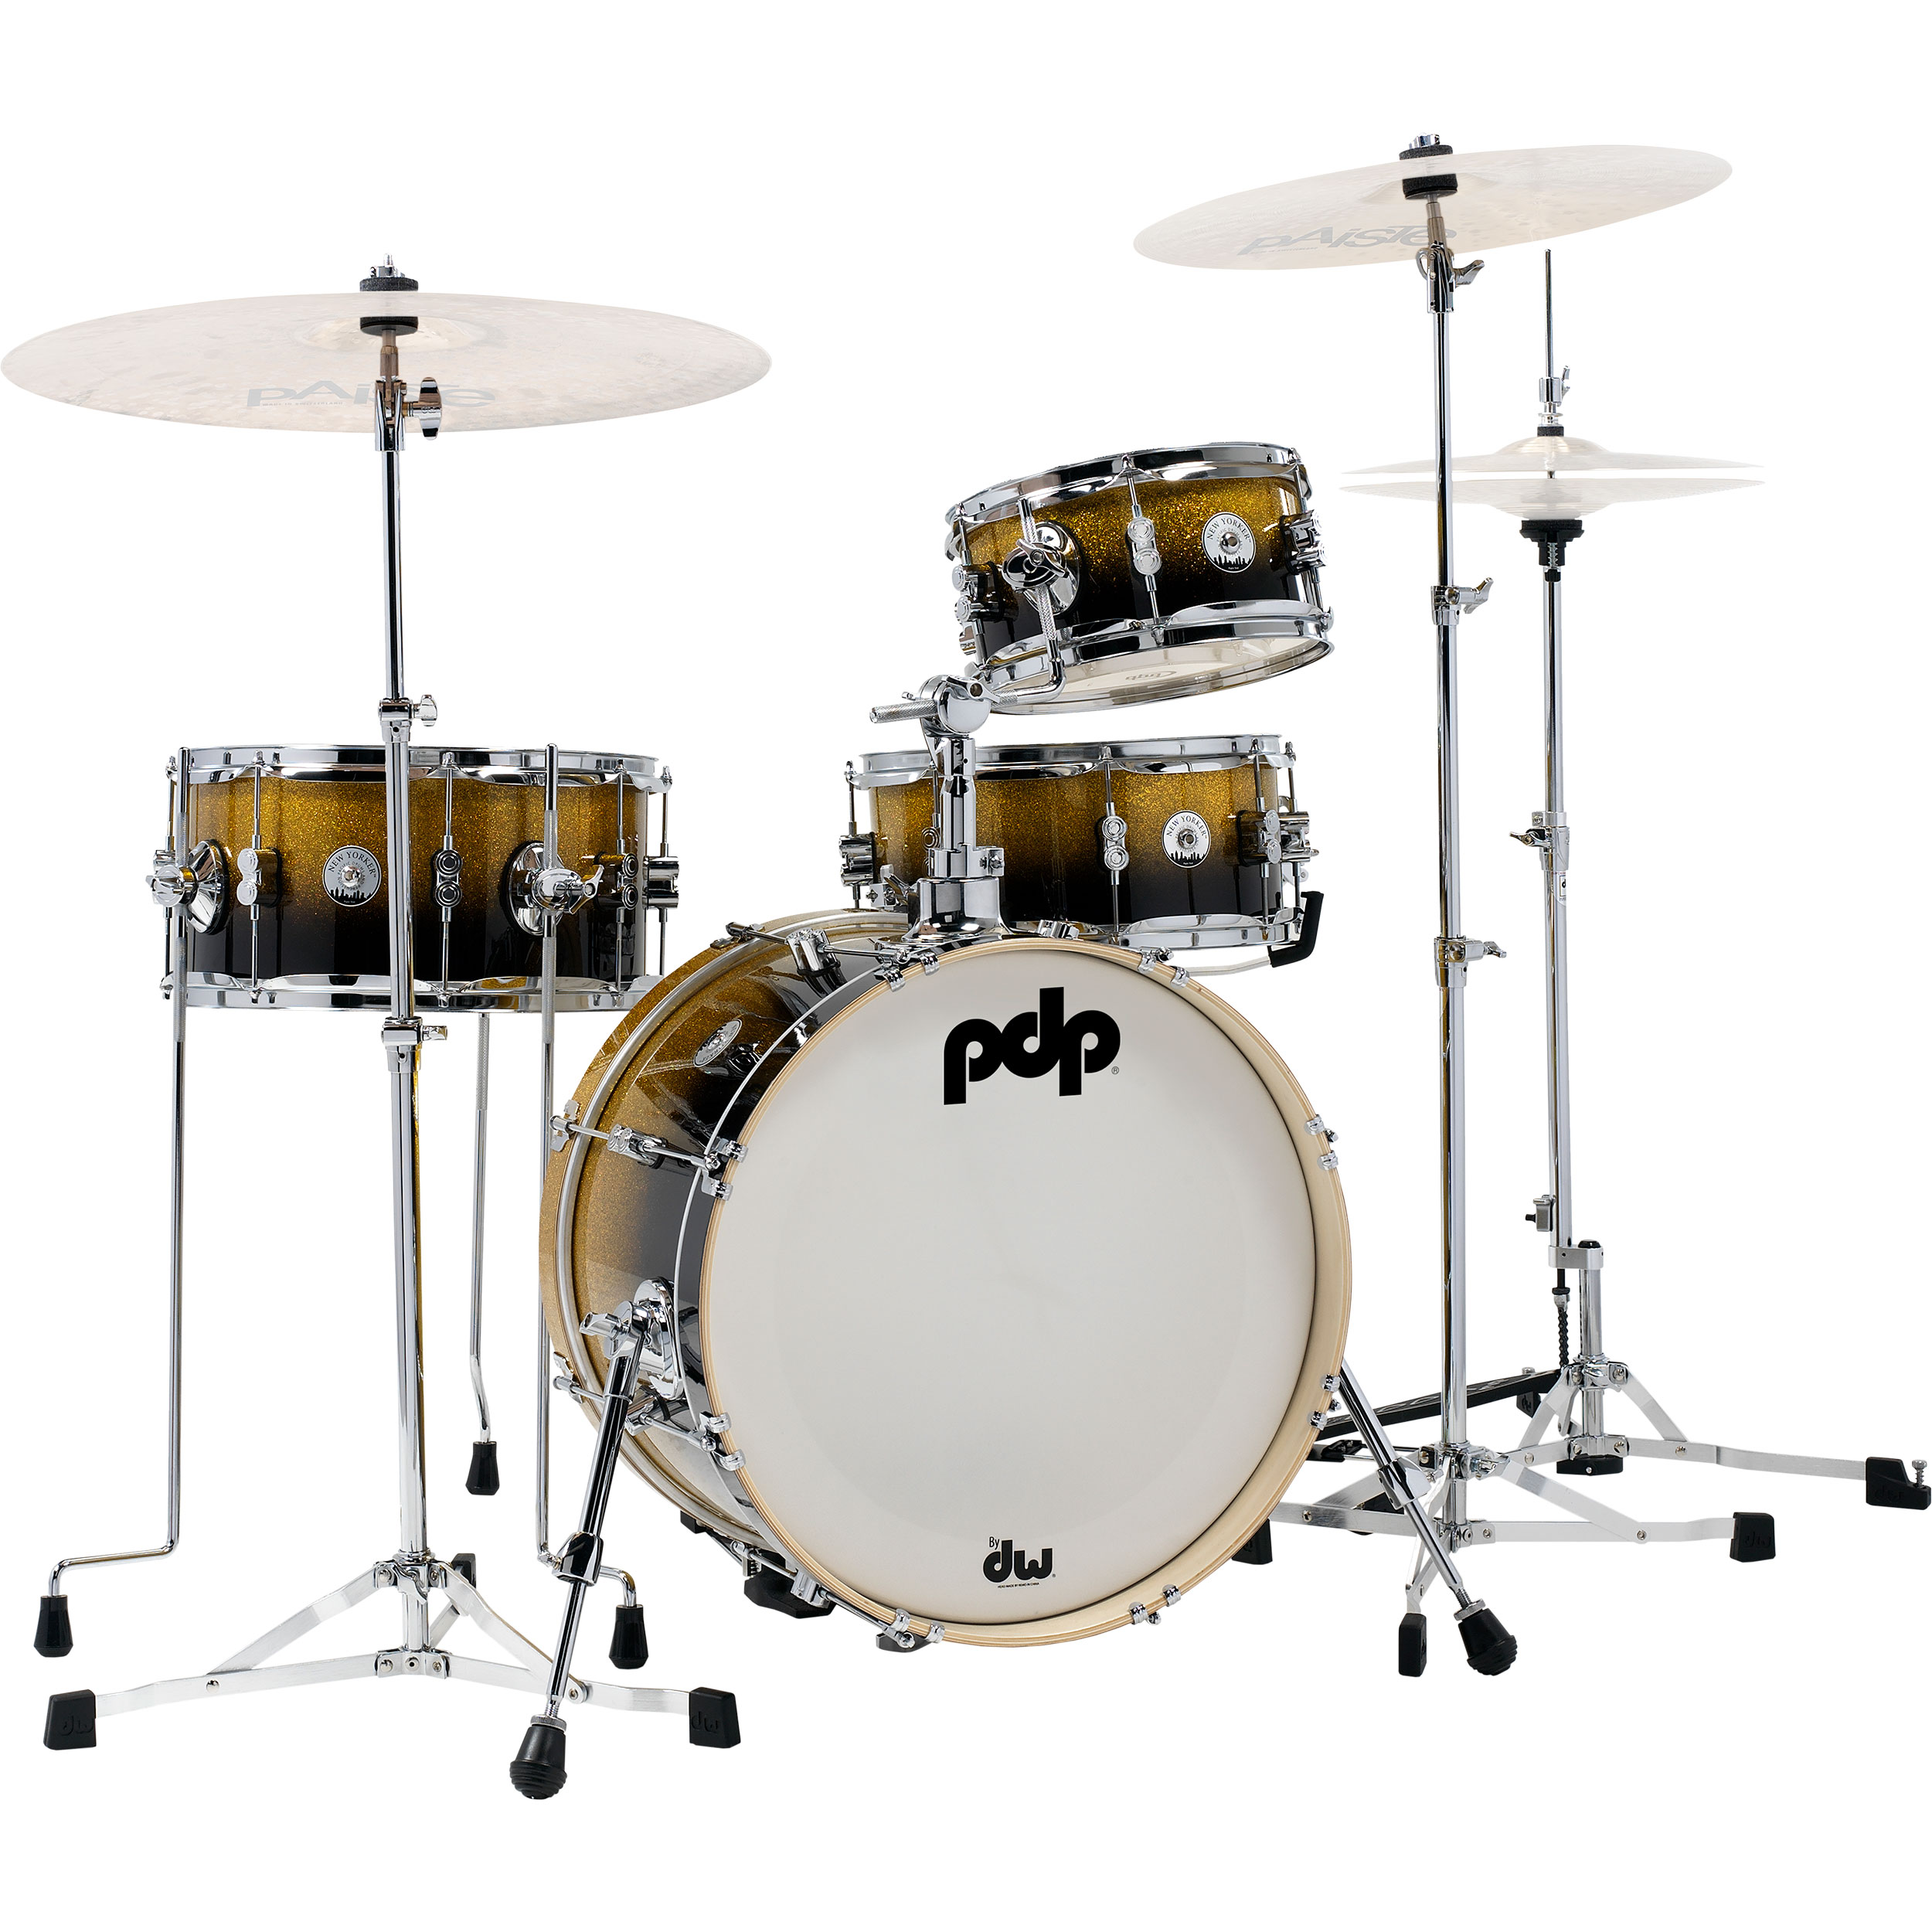 "PDP Daru Jones New Yorker Drum Set with DW 6000 Hardware Pack  & Bags (18"" Bass, 10/14"" Toms, 13"" Snare)"